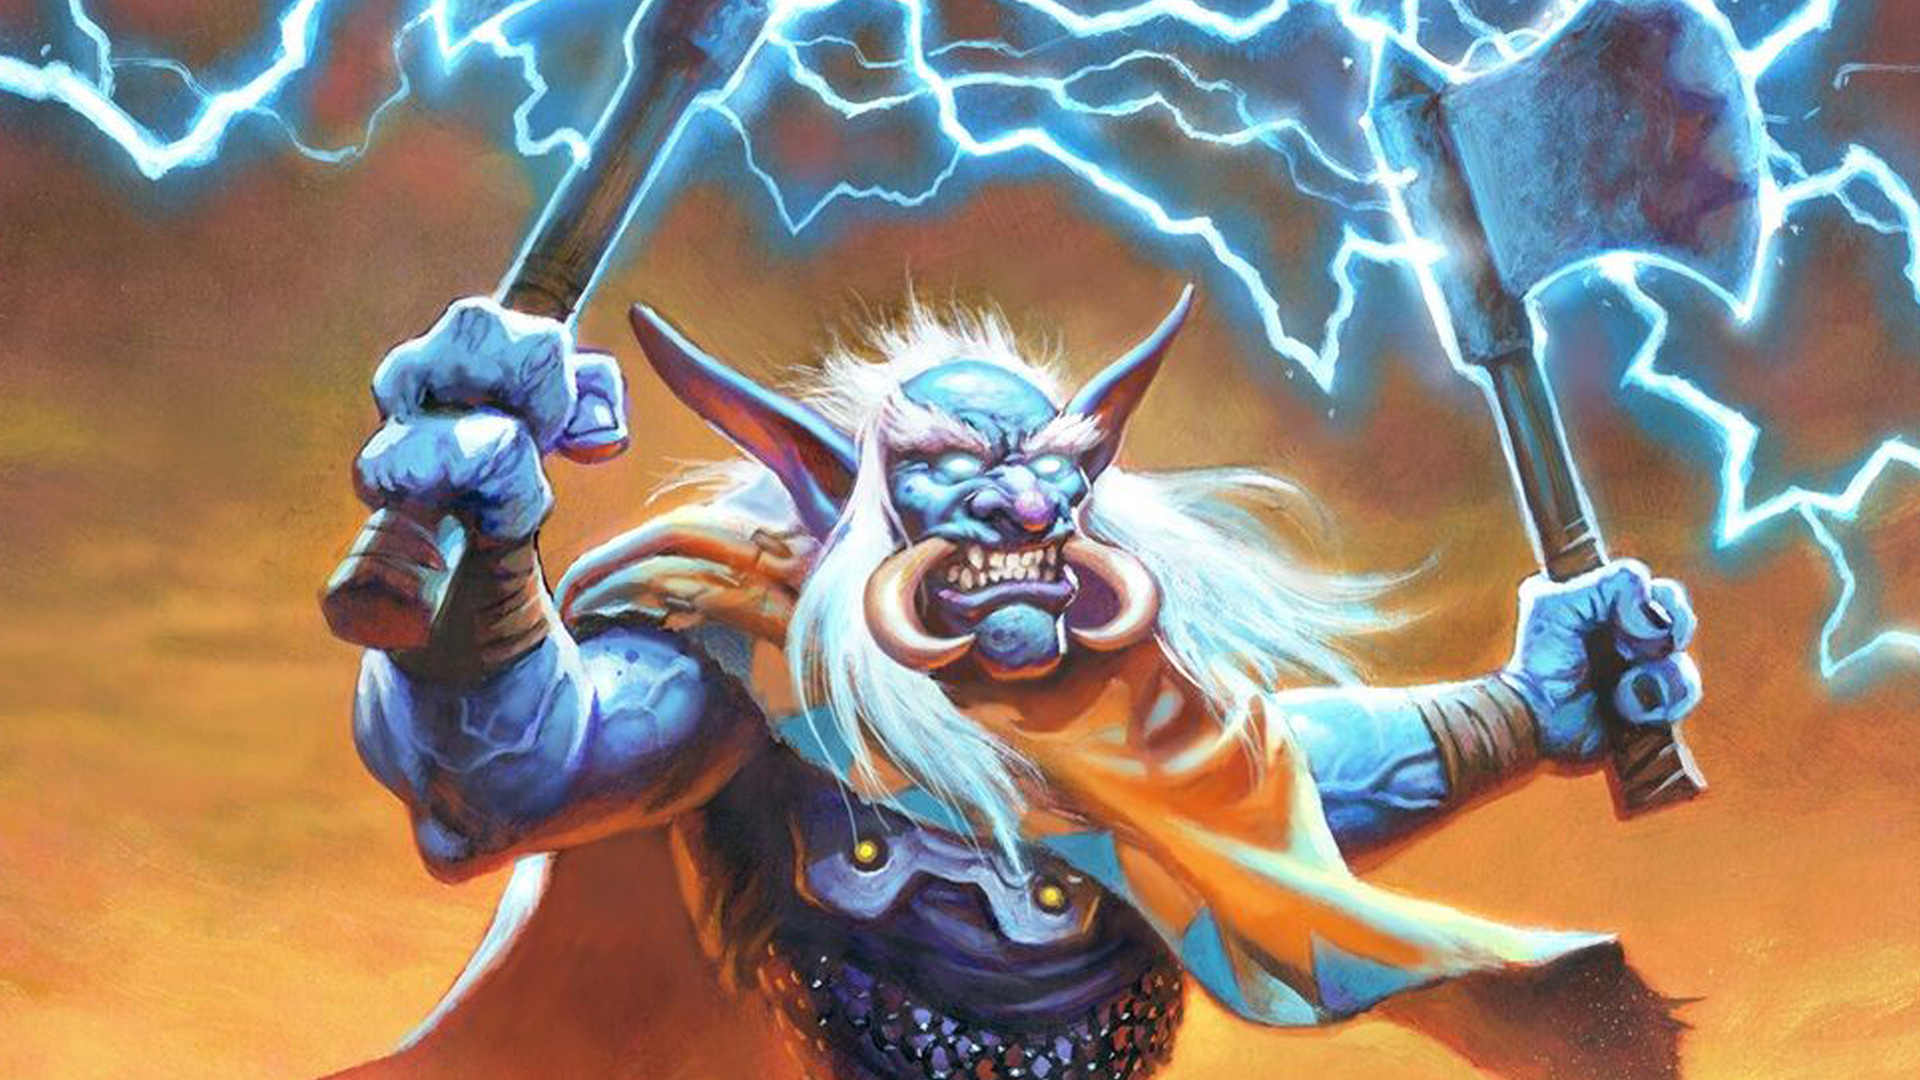 We've got 10 copies of Hearthstone's Forged in the Barrens Mega Bundle to give away